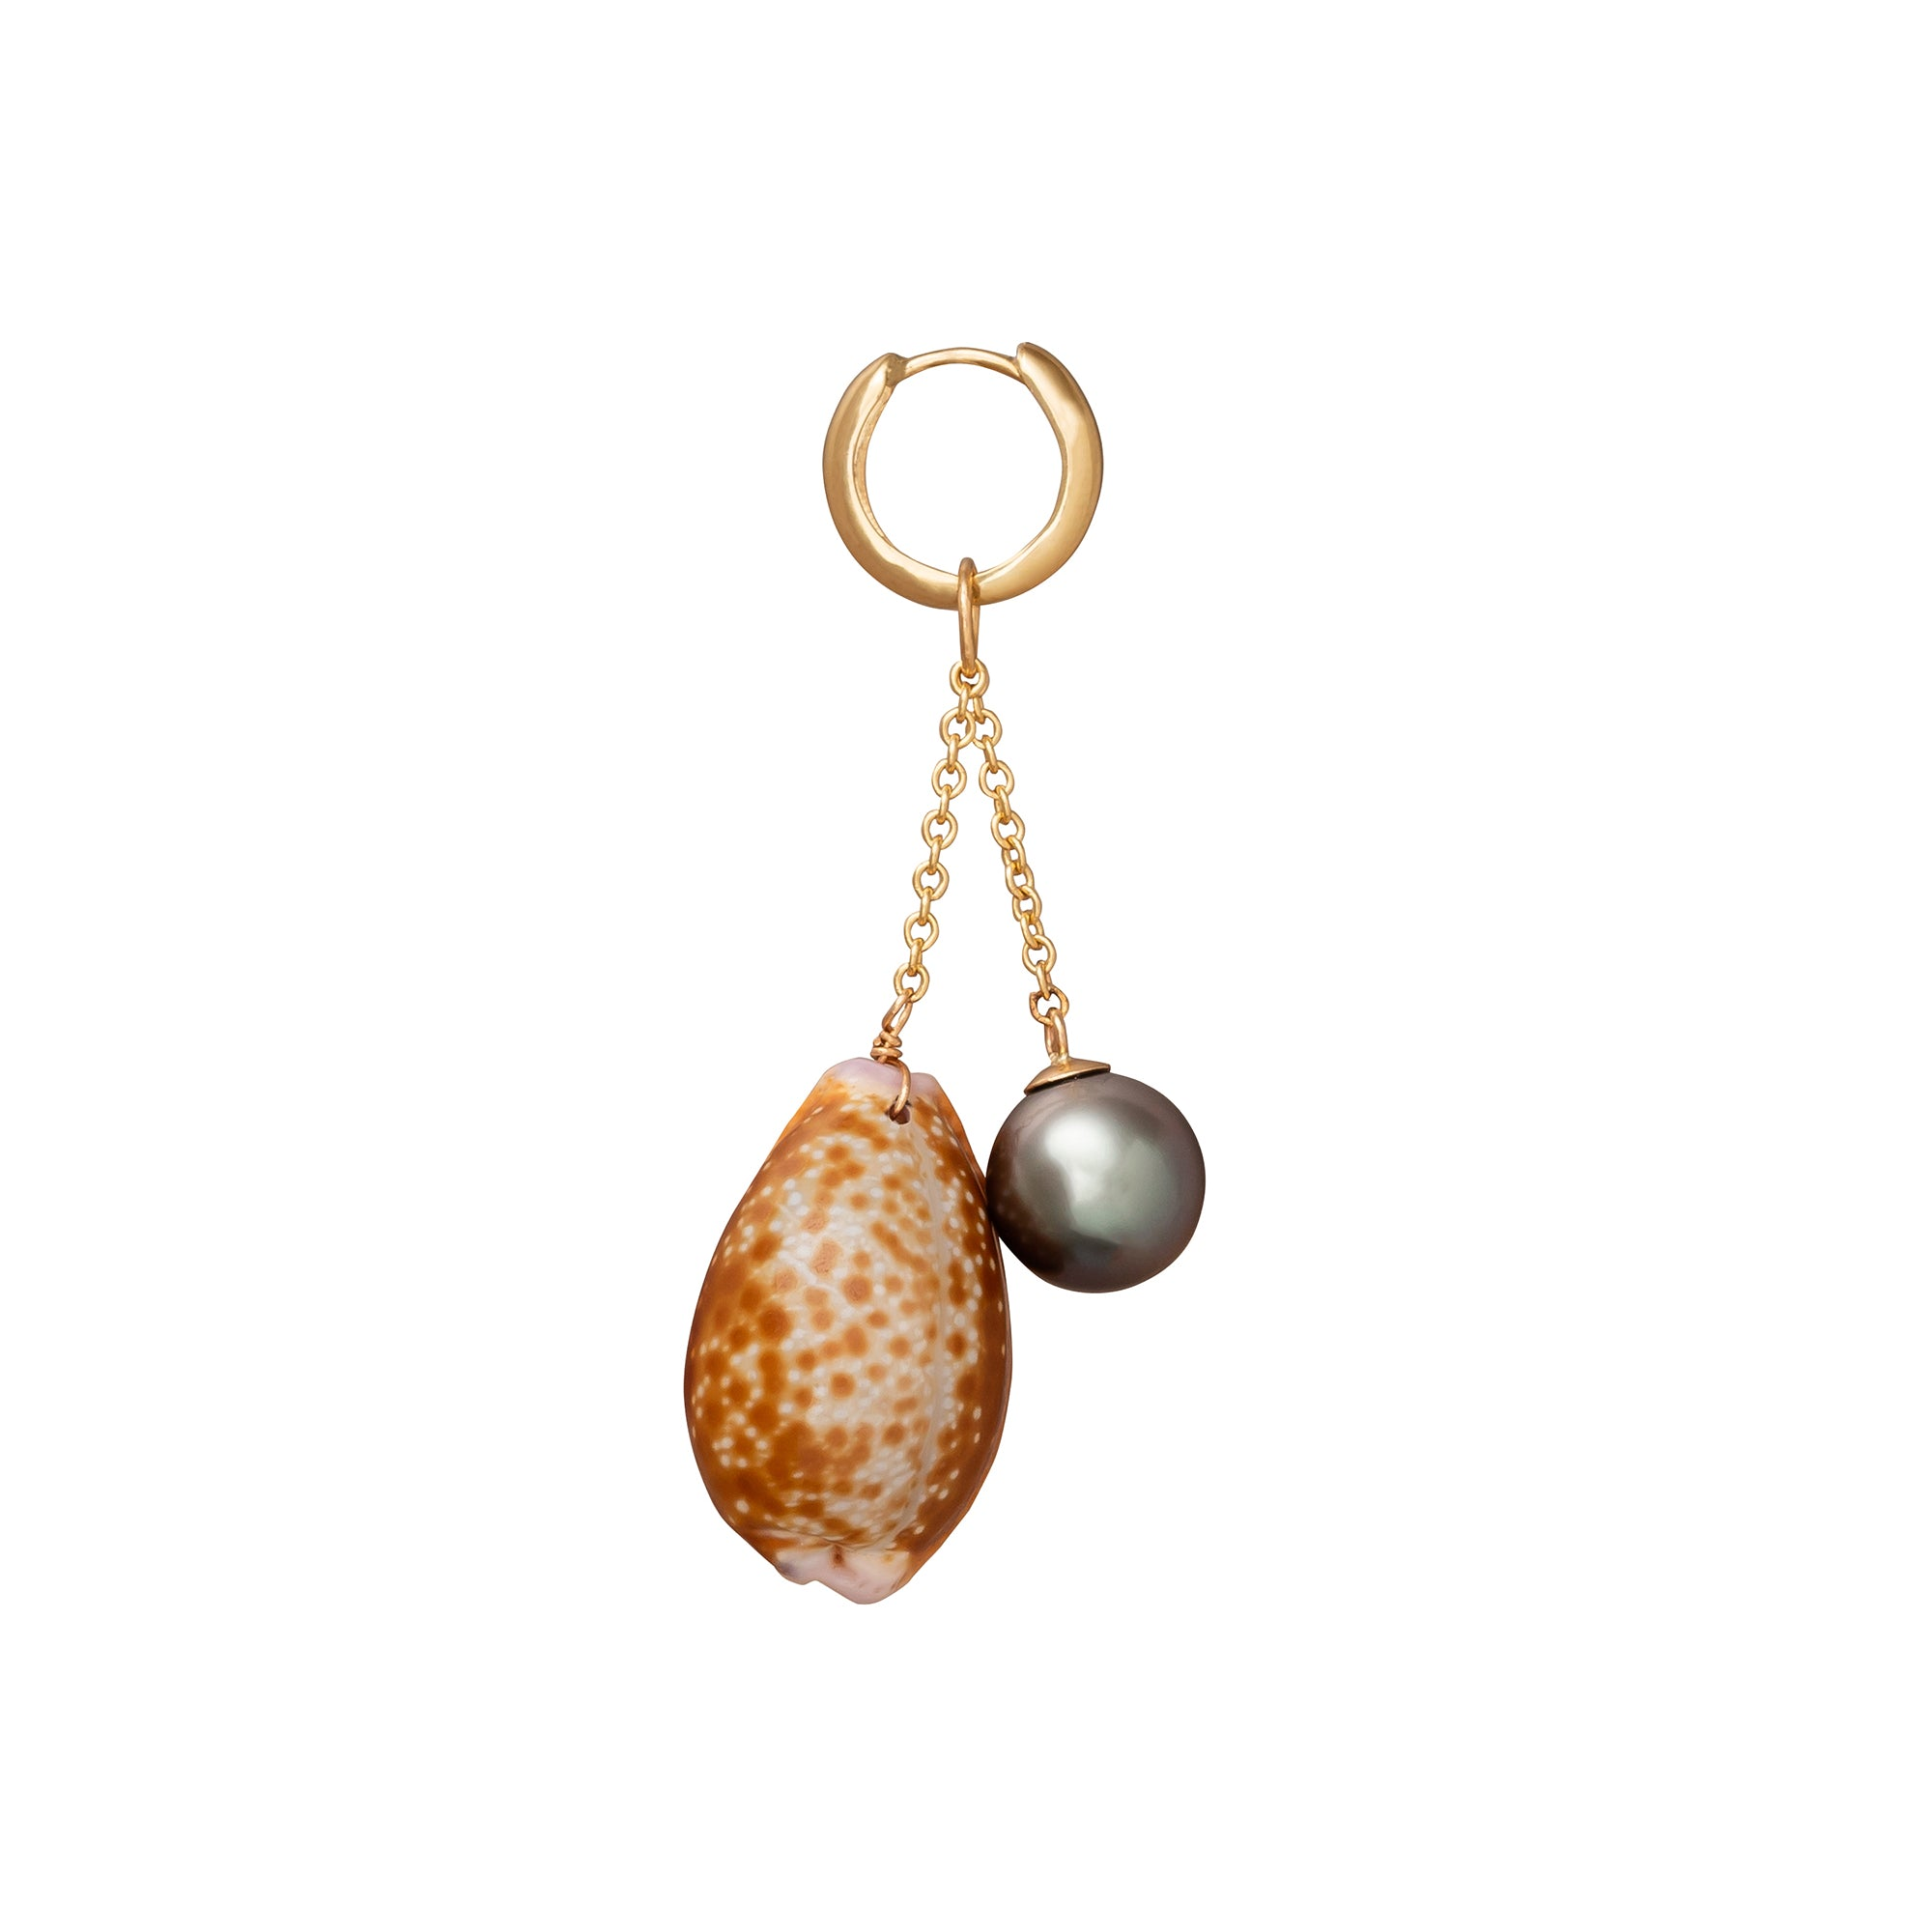 Les Charmantes Pearl and Shell Earring - Haute Victoire - Earrings | Broken English Jewelry